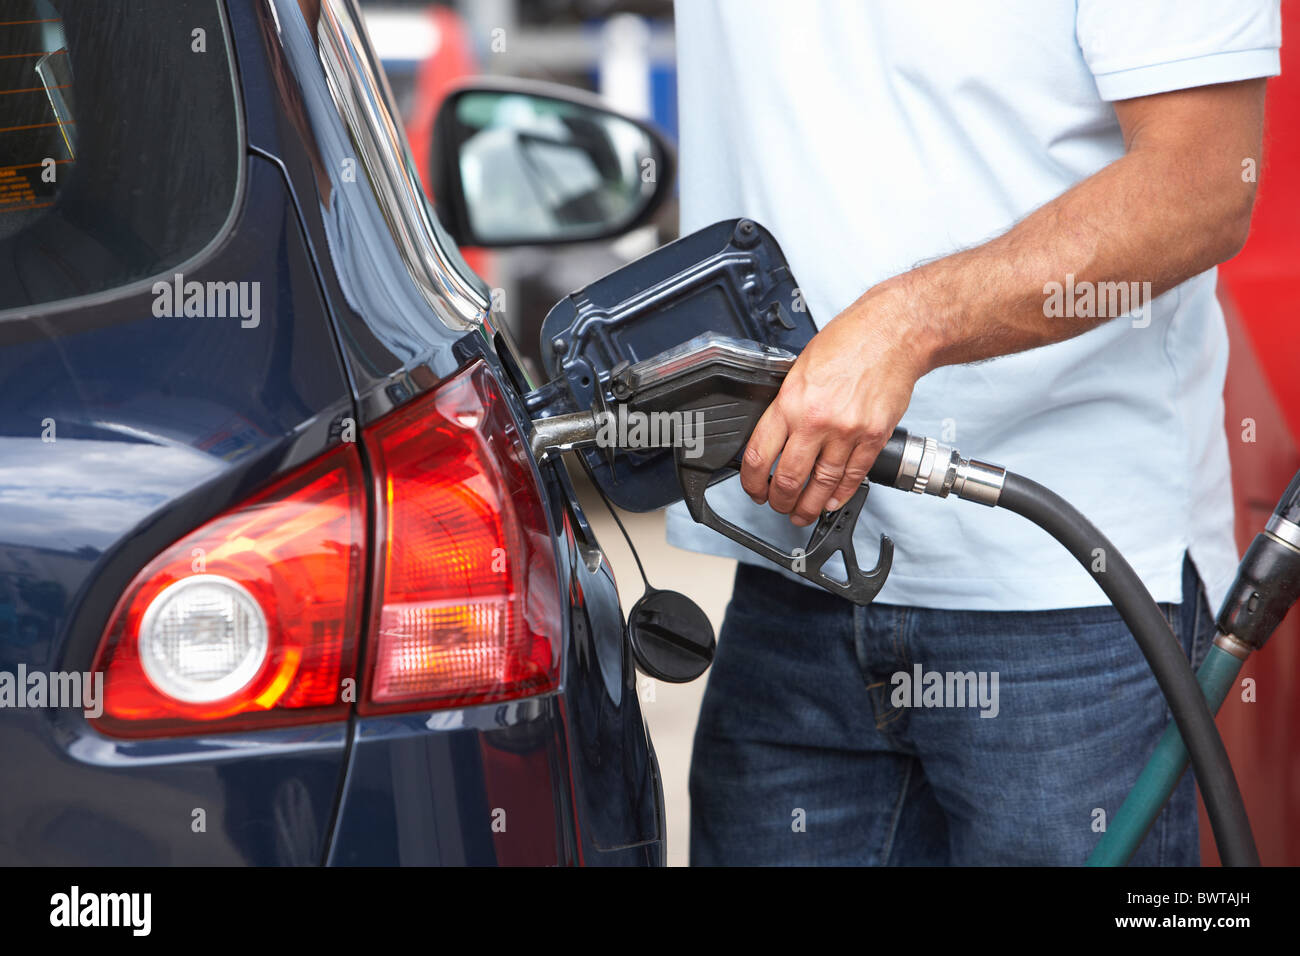 Detail Of Male Motorist Filling Car With Diesel At Petrol Station - Stock Image